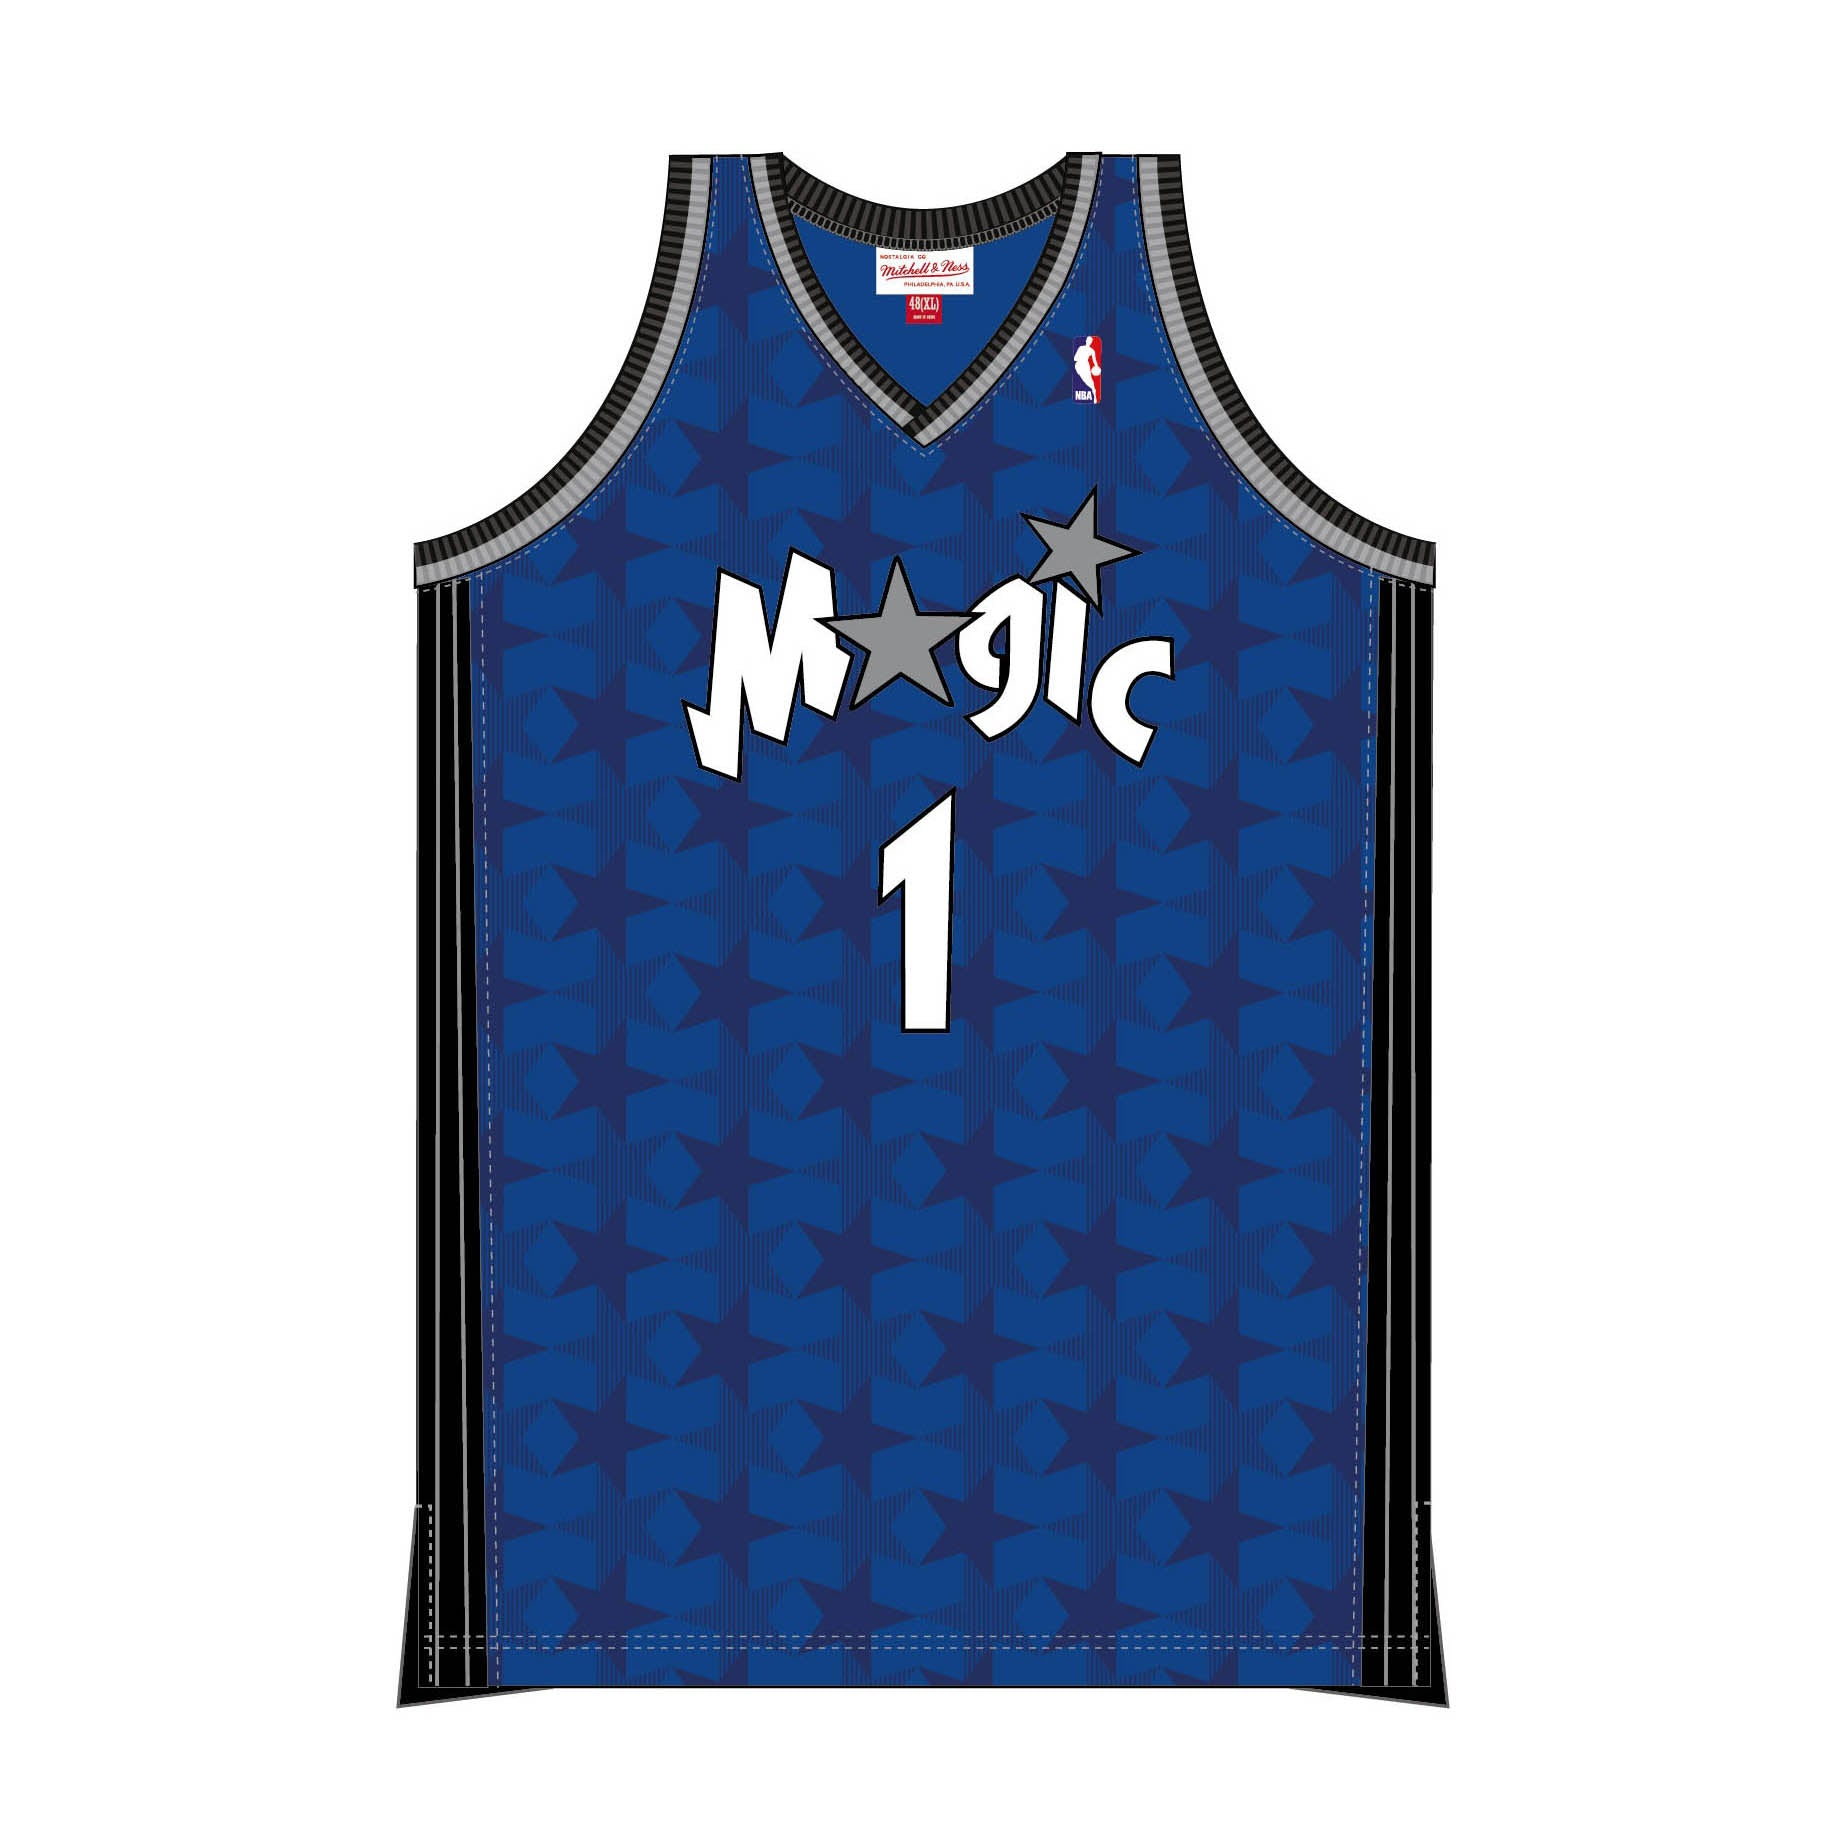 acfc3dd2 MITCHELL & NESS - SWINGMAN JERSEY MAGIC TRACY MCGRADY - Magic Blue ...